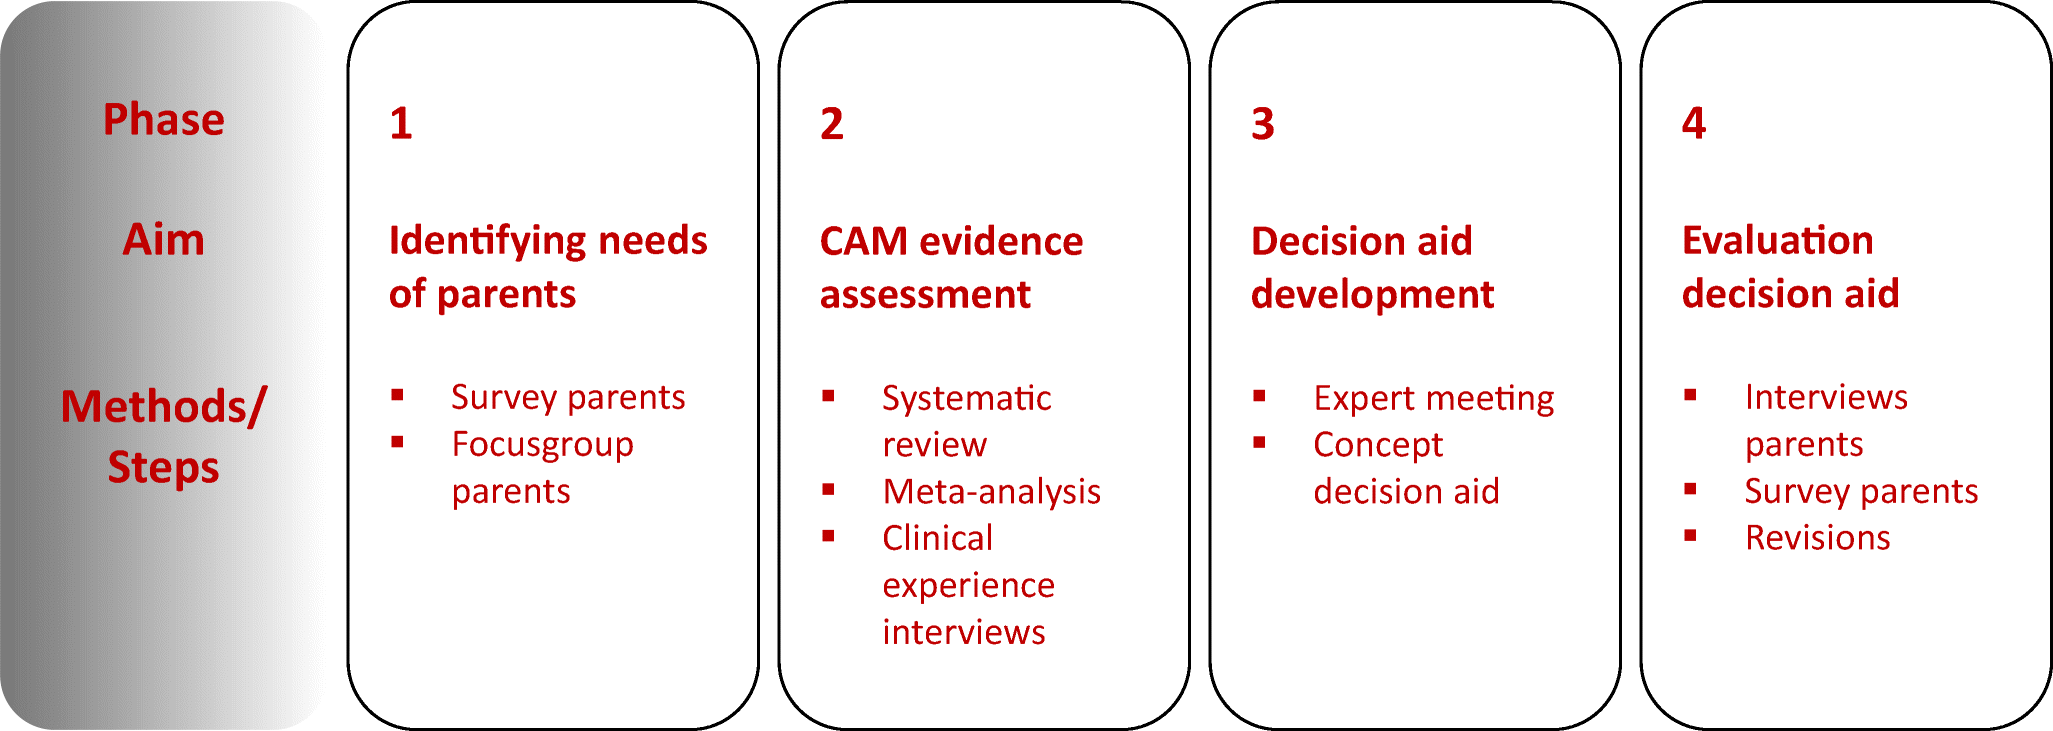 Development of an evidence-based decision aid on